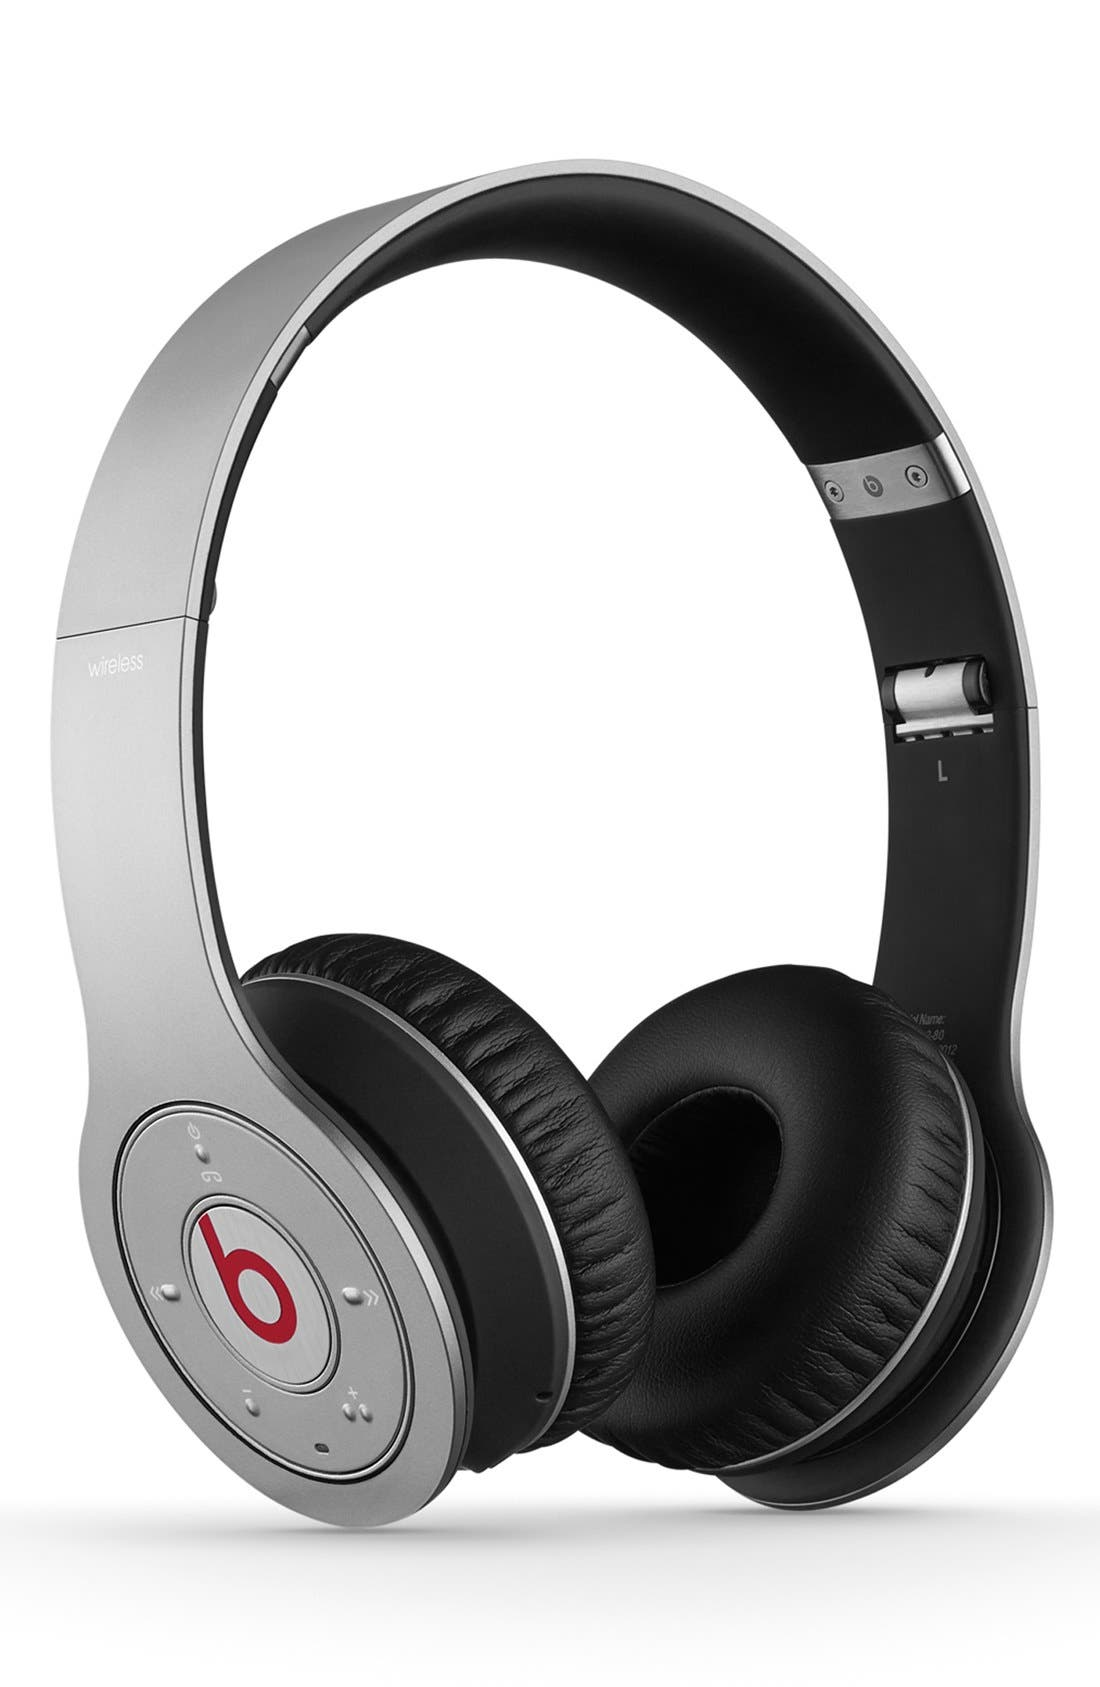 Alternate Image 1 Selected - Beats by Dr. Dre™ Wireless High Definition On-Ear Headphones